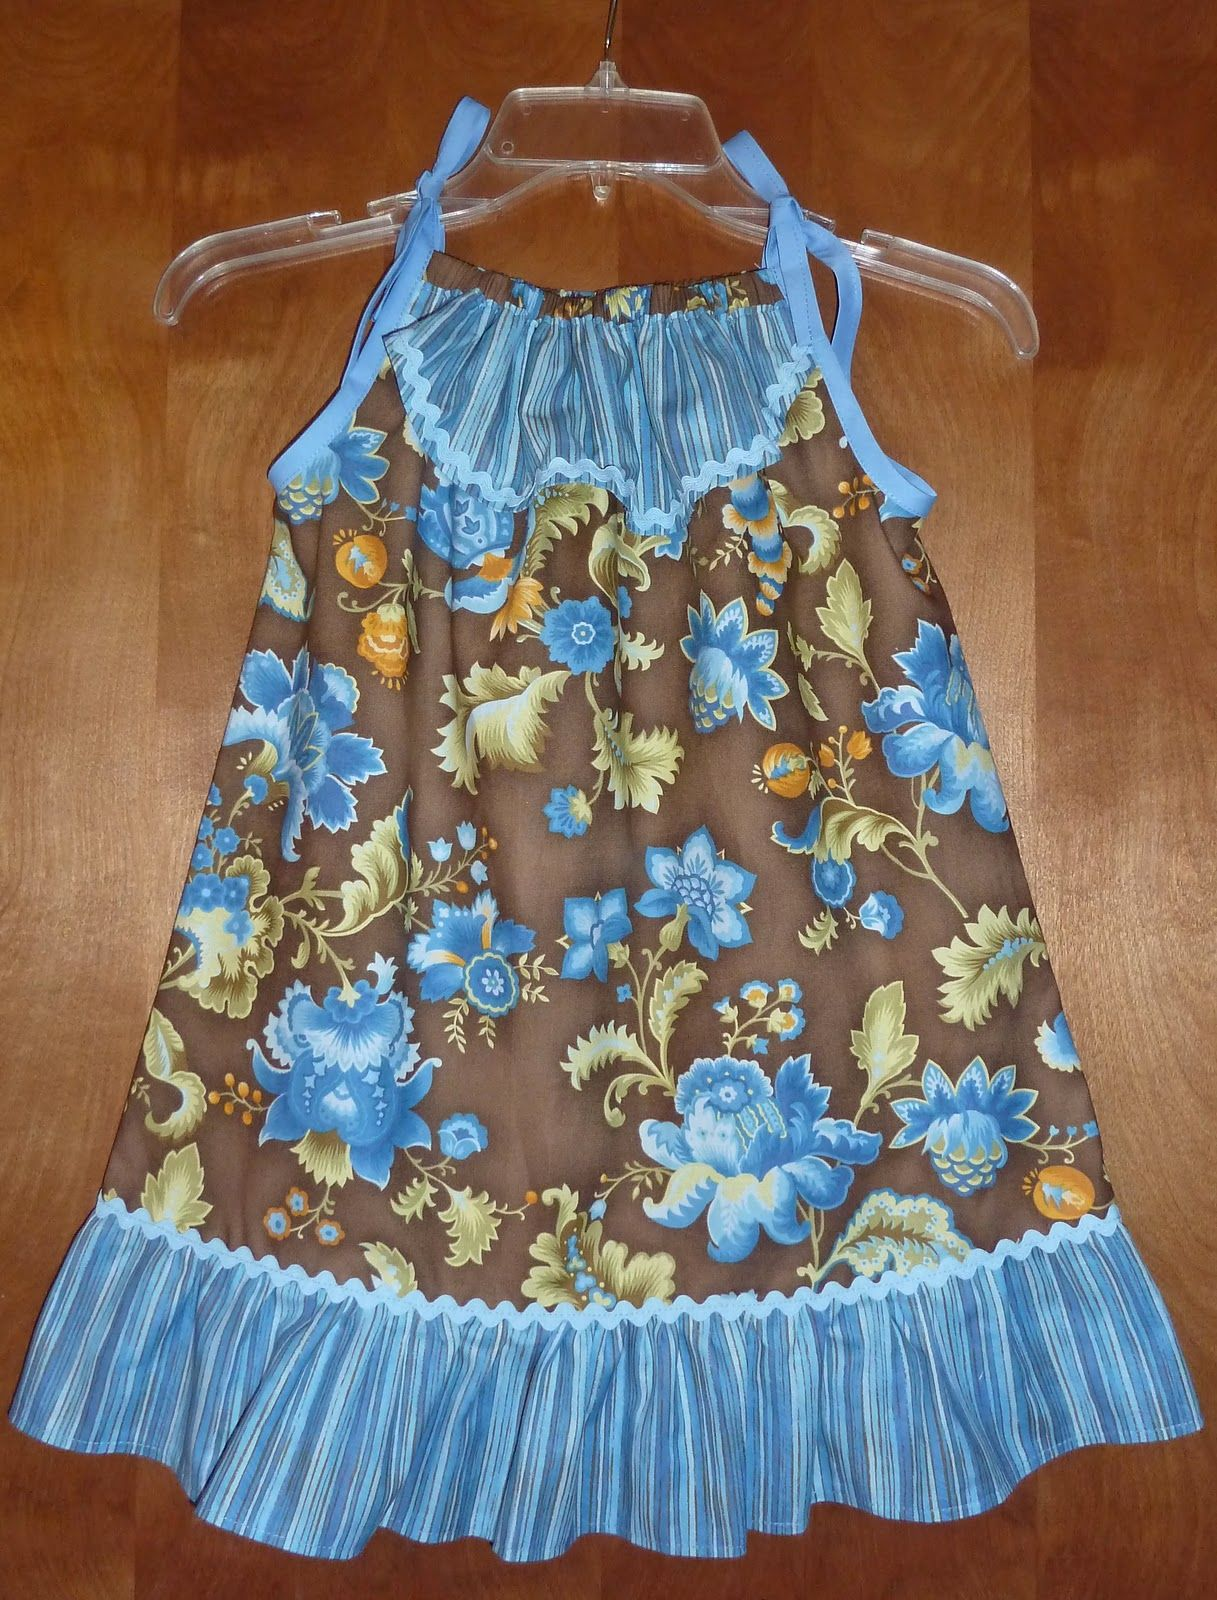 """Sew Delightful: """"Pillowcase"""" Drawstring dress fabric dimensions. For """"Little Dresses for Africa"""" and """"Dress a Girl Around the World."""""""